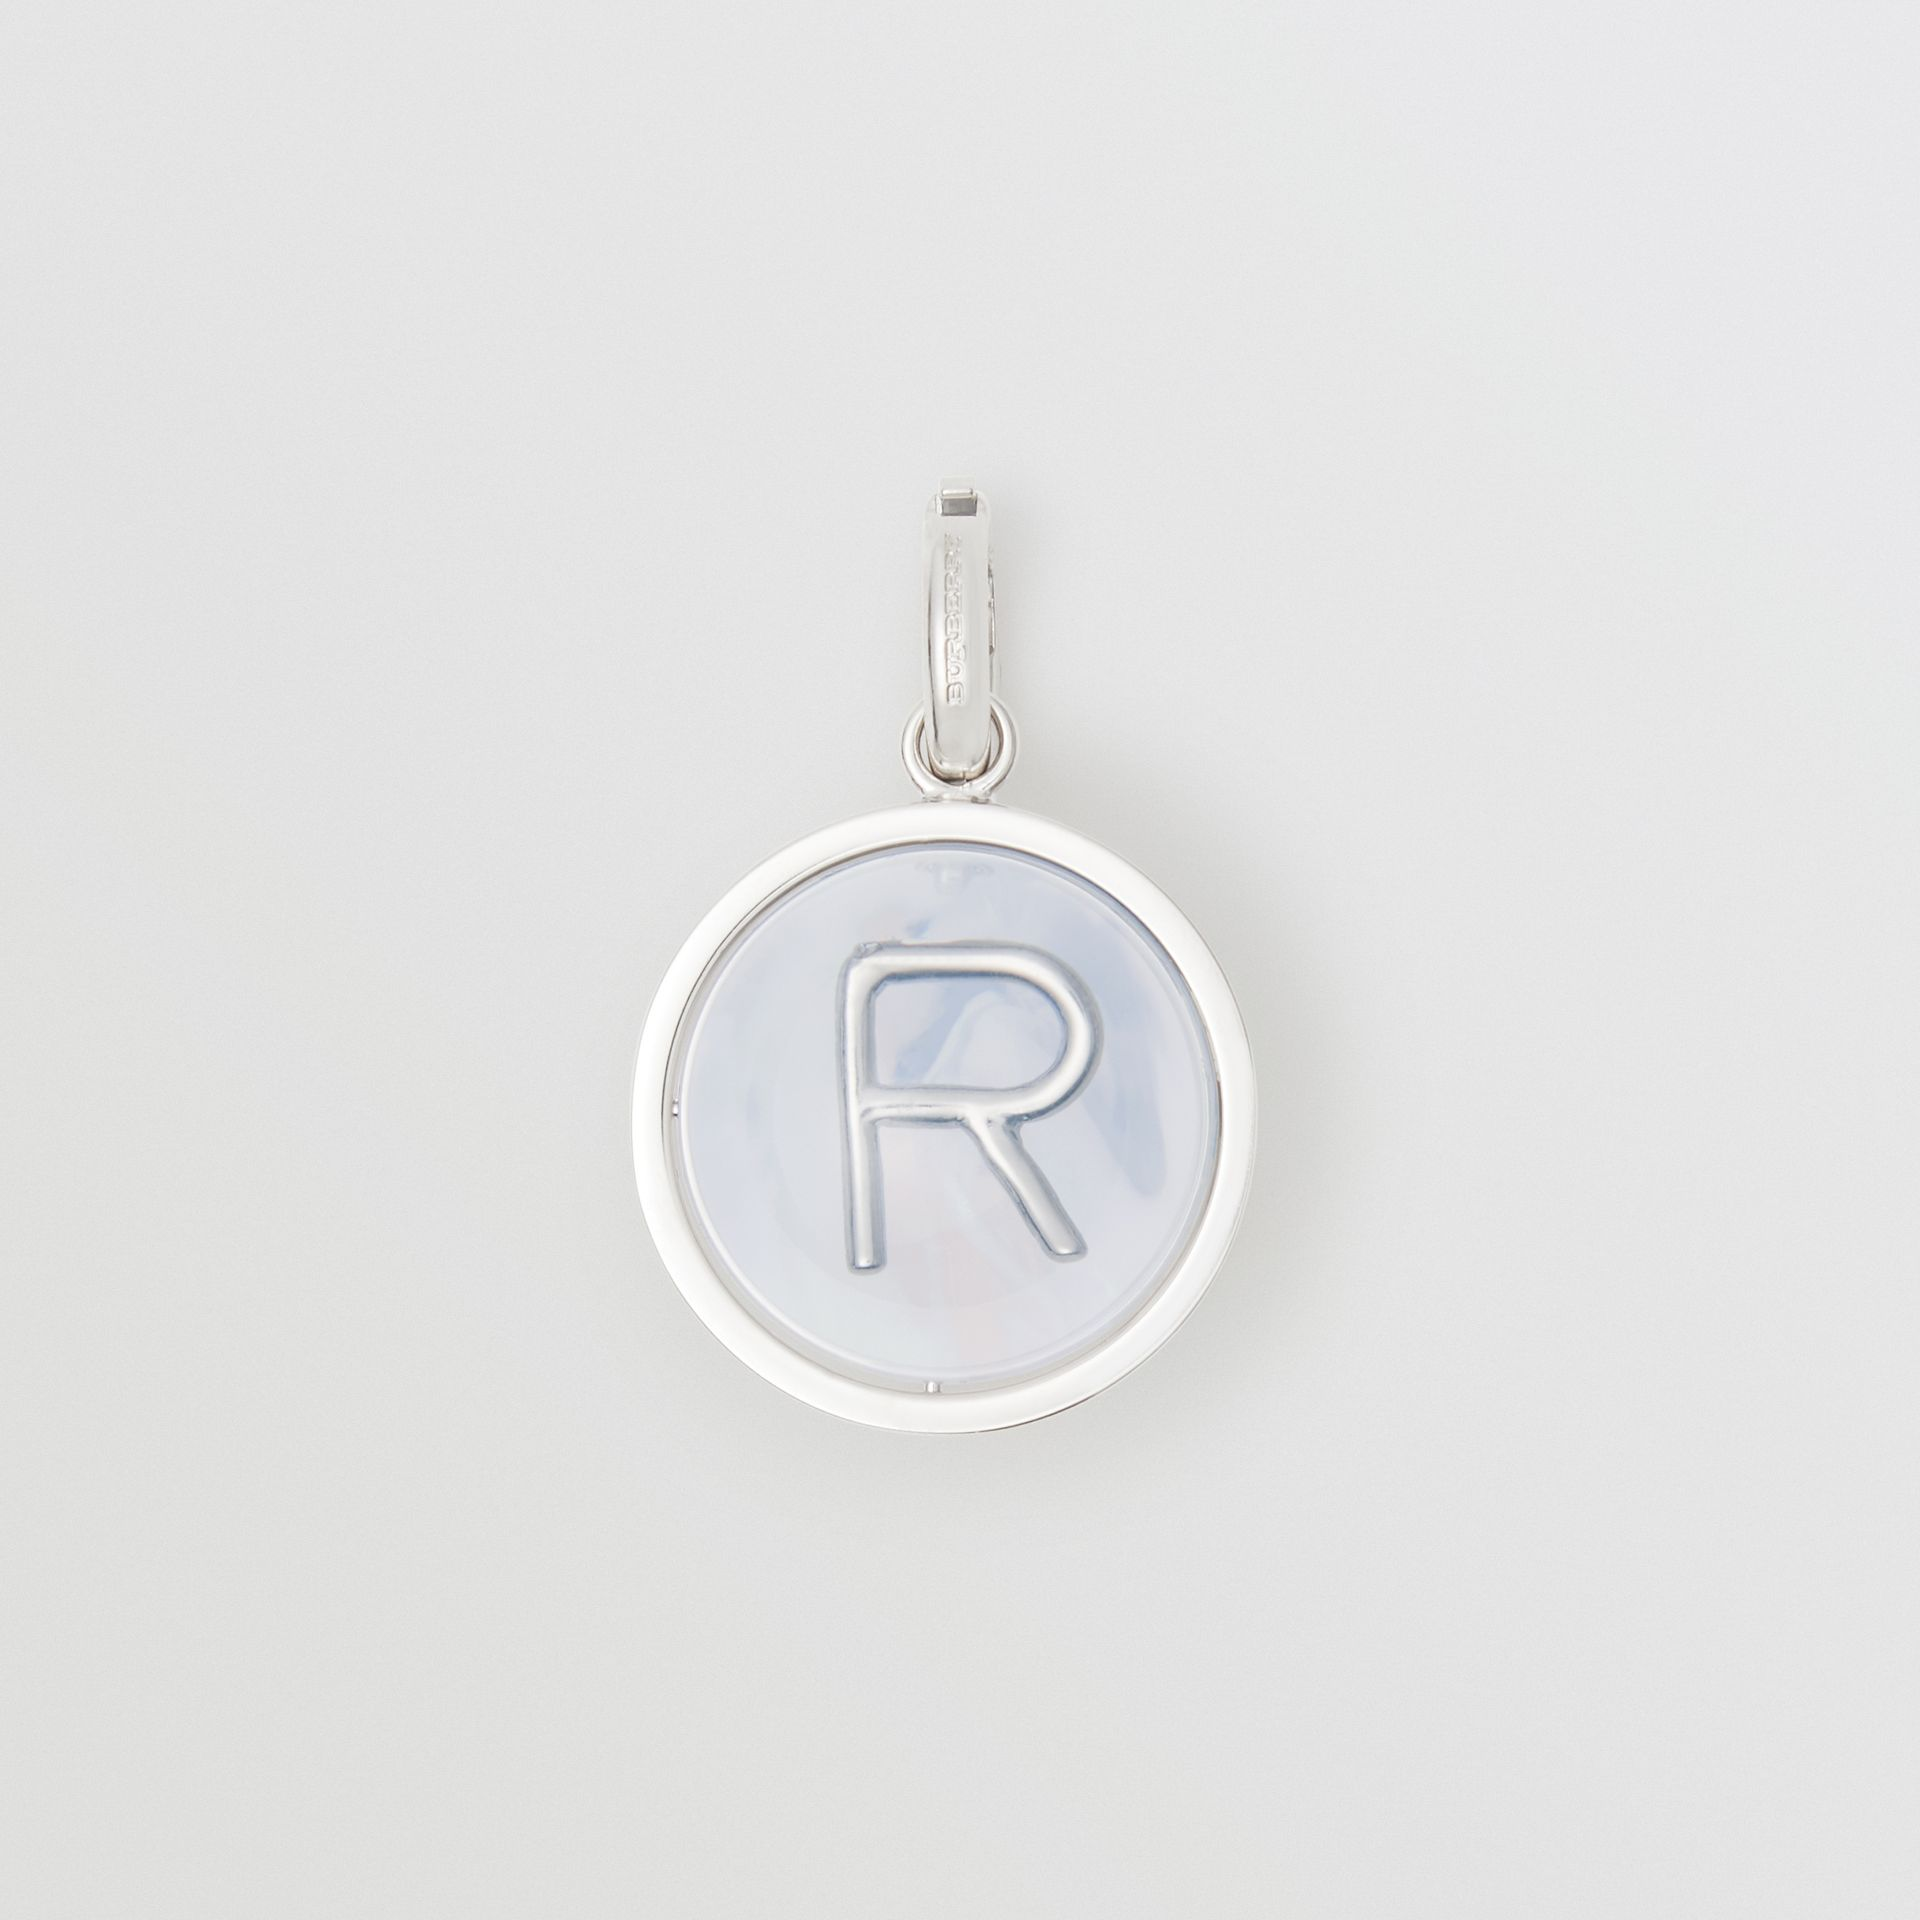 Marbled Resin 'R' Alphabet Charm in Palladio/nacre - Women | Burberry Australia - gallery image 0